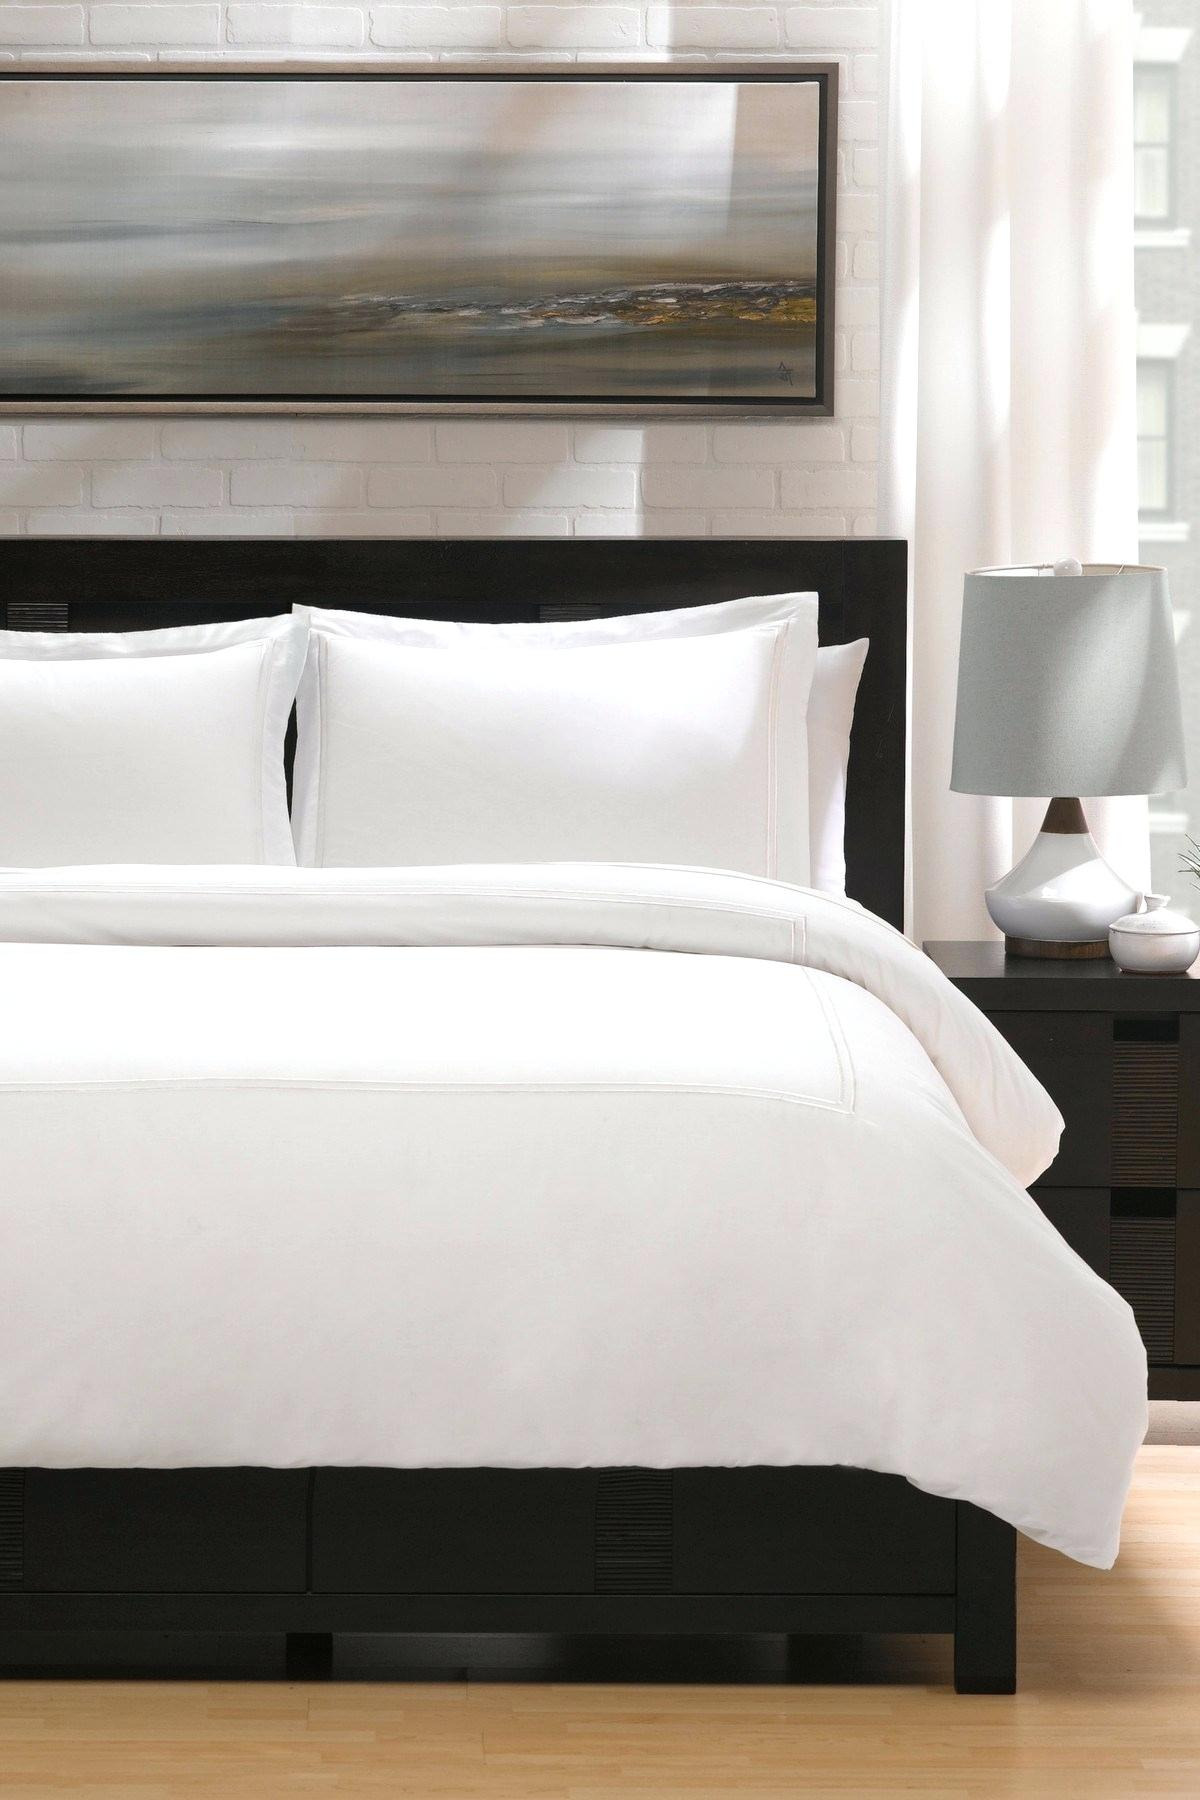 hotel luxury percale king california king duvet set california king duvet cover california king duvet cover size nz